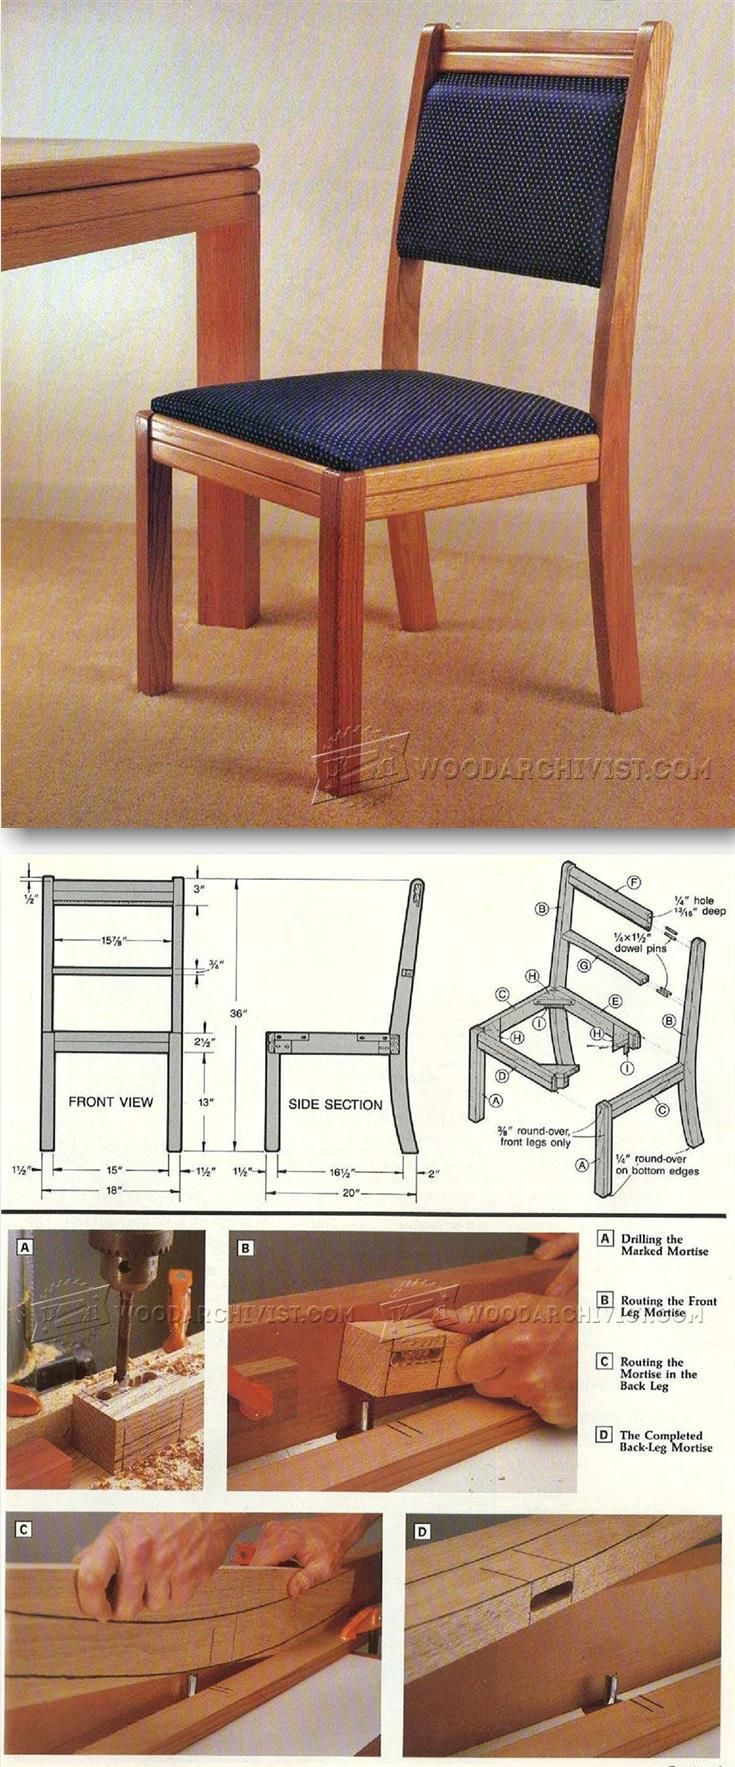 Solid Oak Dining Chair Plans - Furniture Plans and Projects | WoodArchivist.com